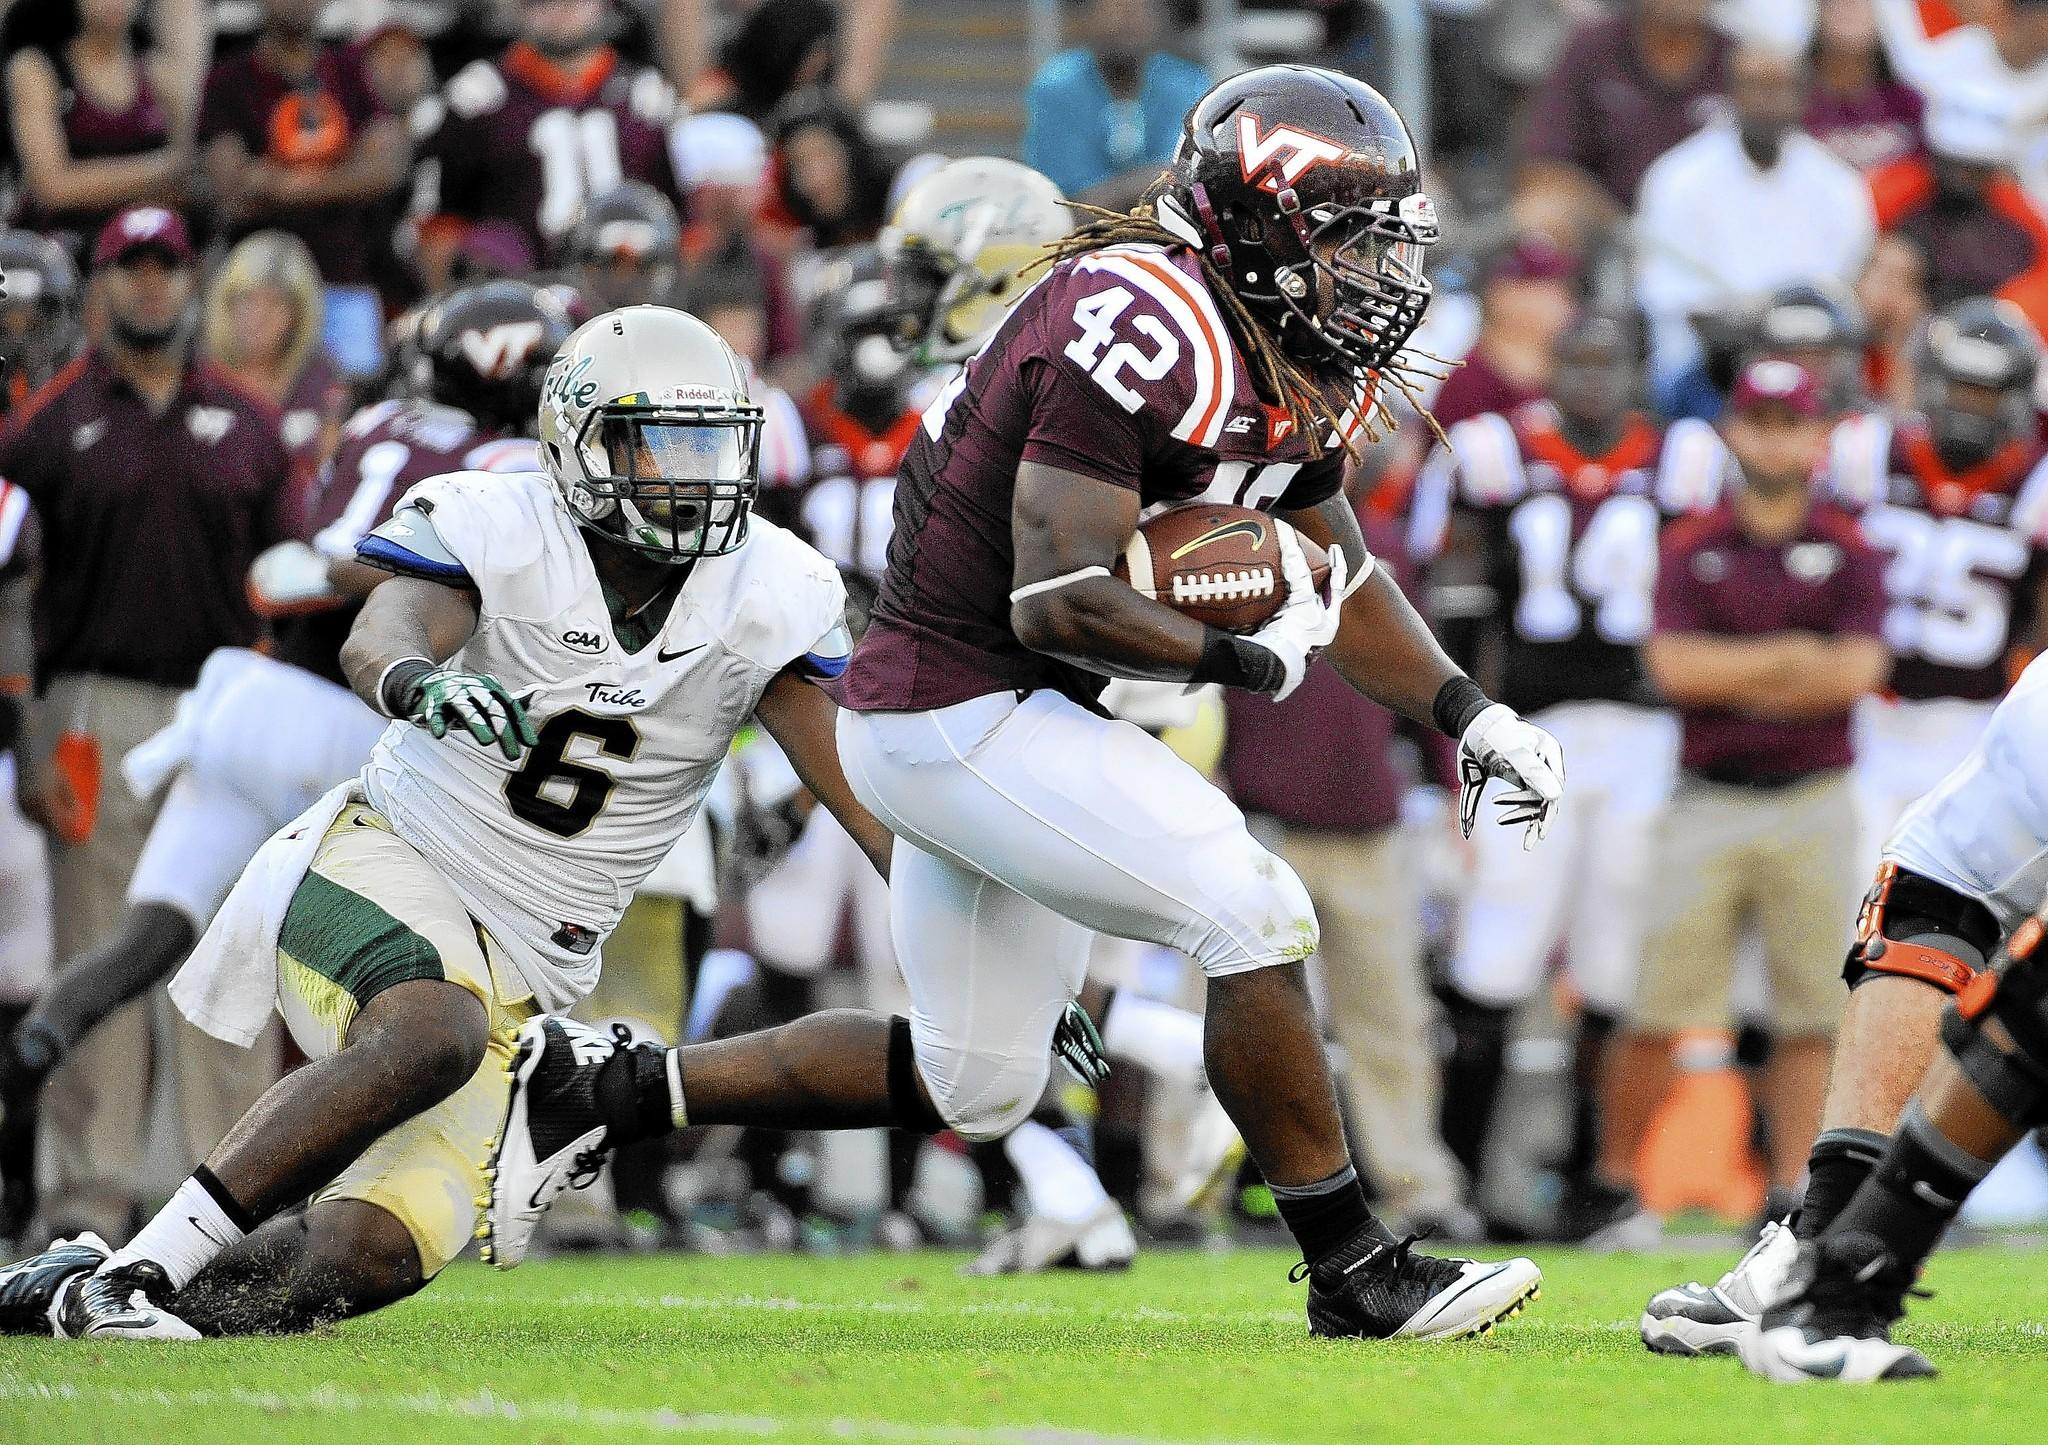 BLACKSBURG, VA - AUGUST 30: Running back Marshawn Williams #42 of the Virginia Tech Hokies rushes against linebacker Airek Green of the William & Mary Tribe at Lane Stadium on August 30, 2014 in Blacksburg, Virginia. Virginia Tech defeated William & Mary 34-9. (Photo by Michael Shroyer/Getty Images) ORG XMIT: 509285383 ** OUTS - ELSENT and FPG - OUTS * NM, PH, VA if sourced by CT, LA or MoD **